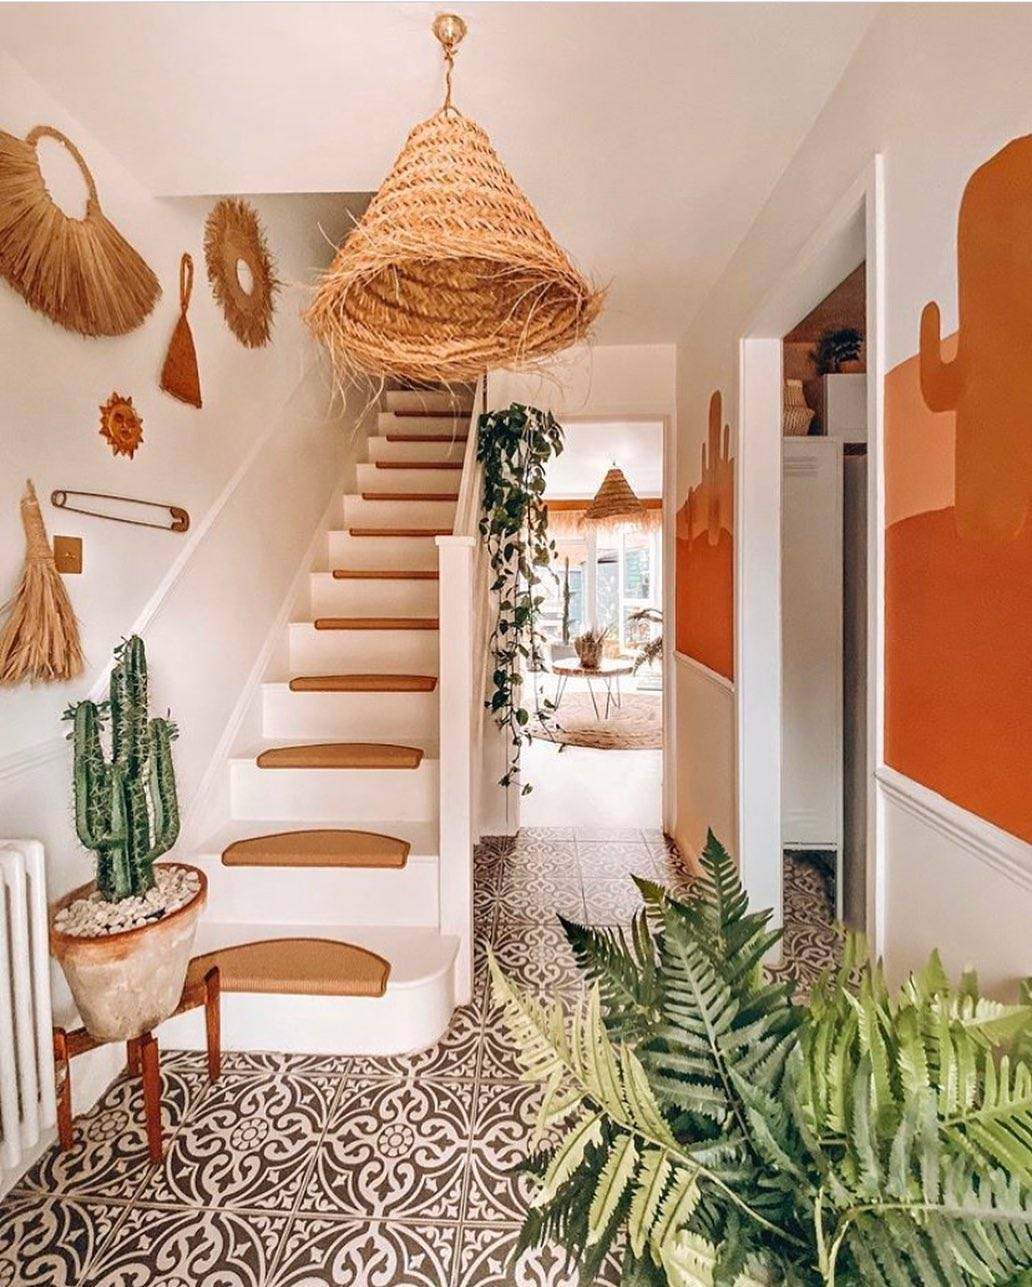 Carpeted entryway with woven decorations and plants